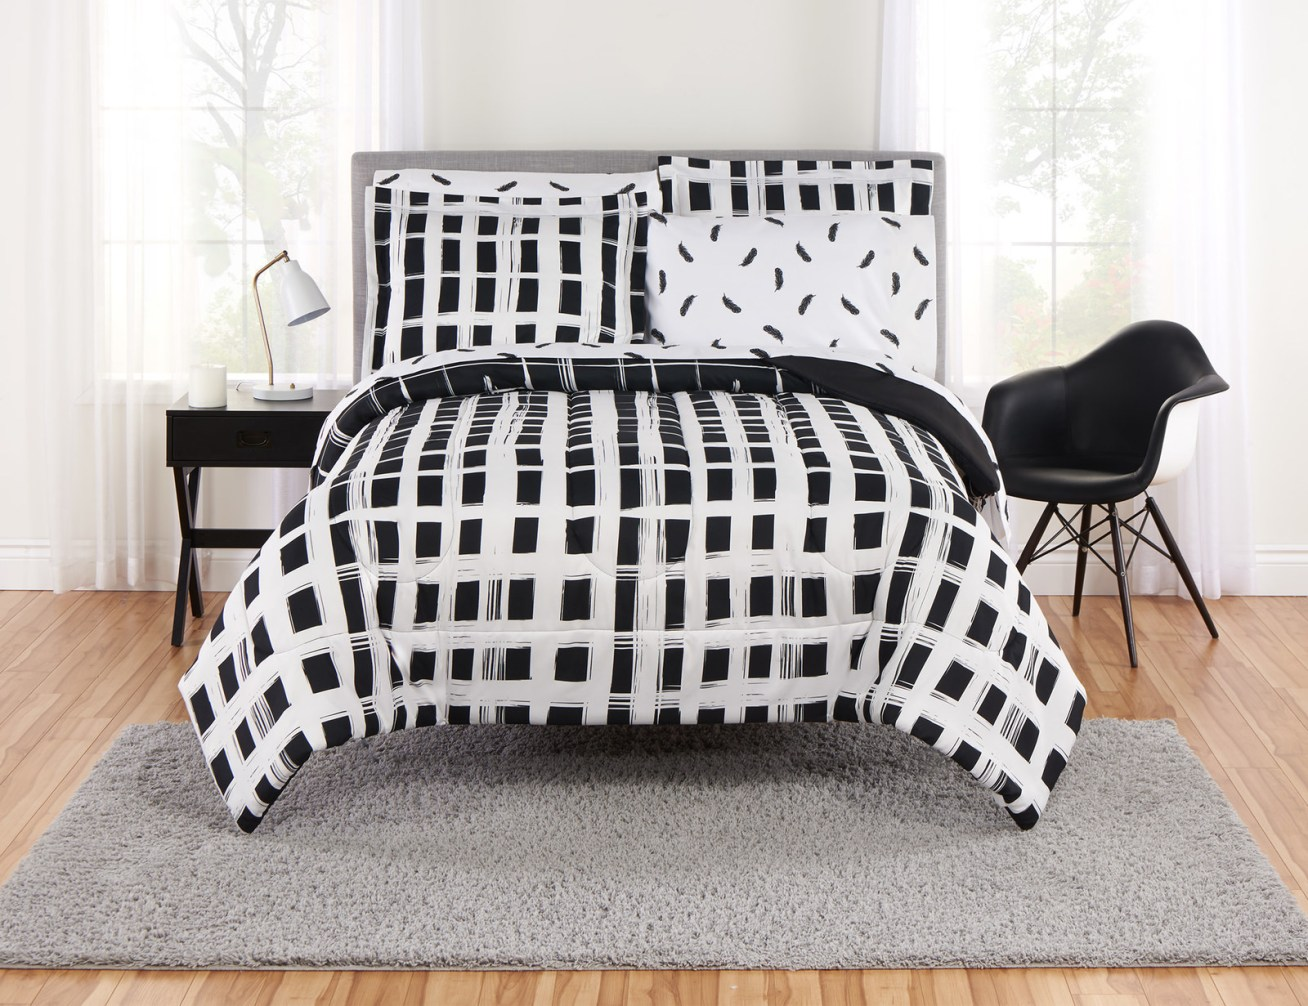 Includes a comforter, sheet set, shams, and pillow cases (items vary based on the size of the set).Price: .61+ (available in three sizes)